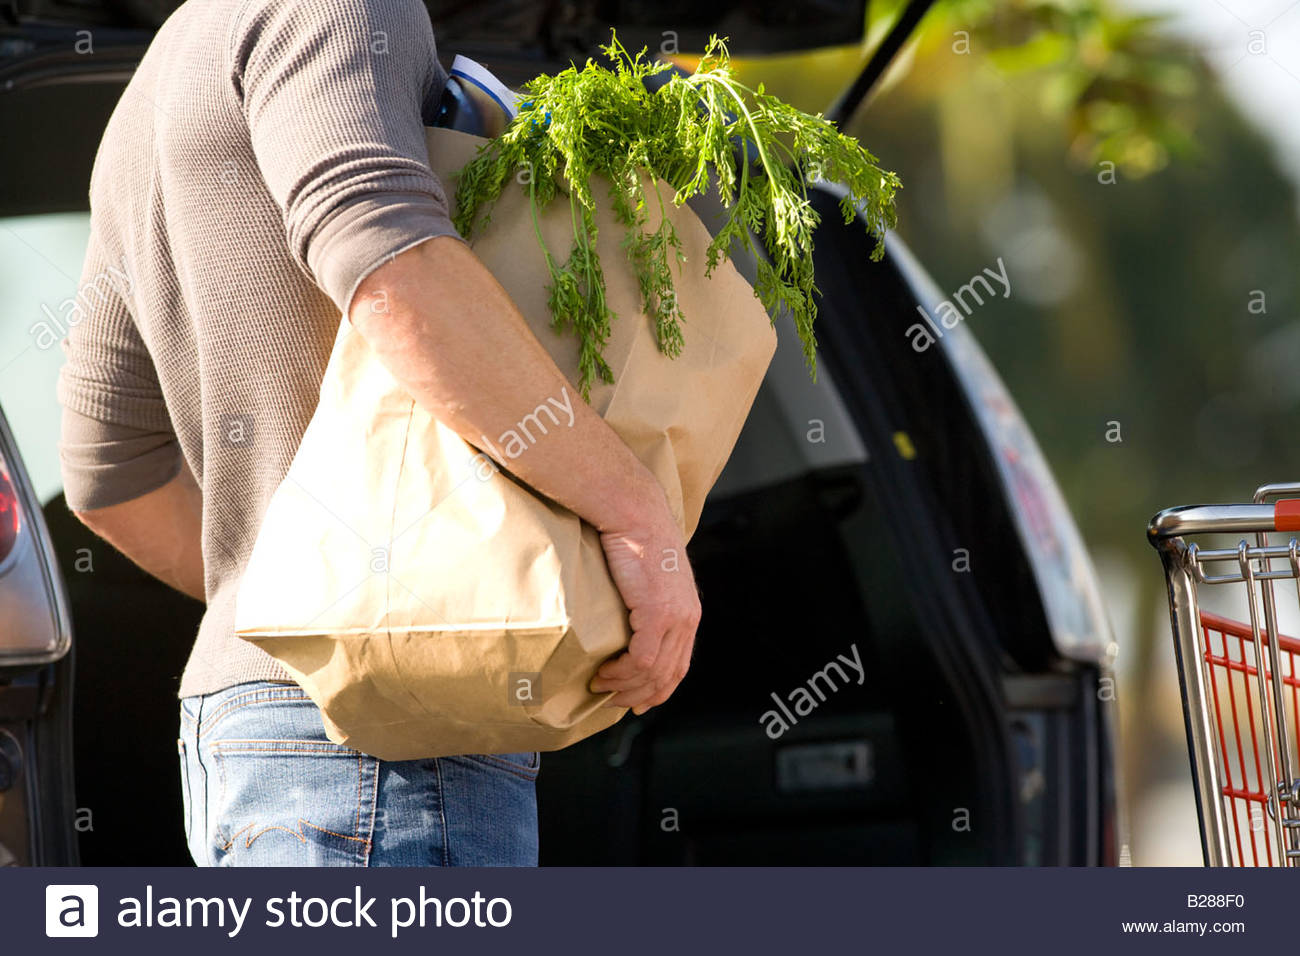 Man loading groceries into rear of car - Stock Image